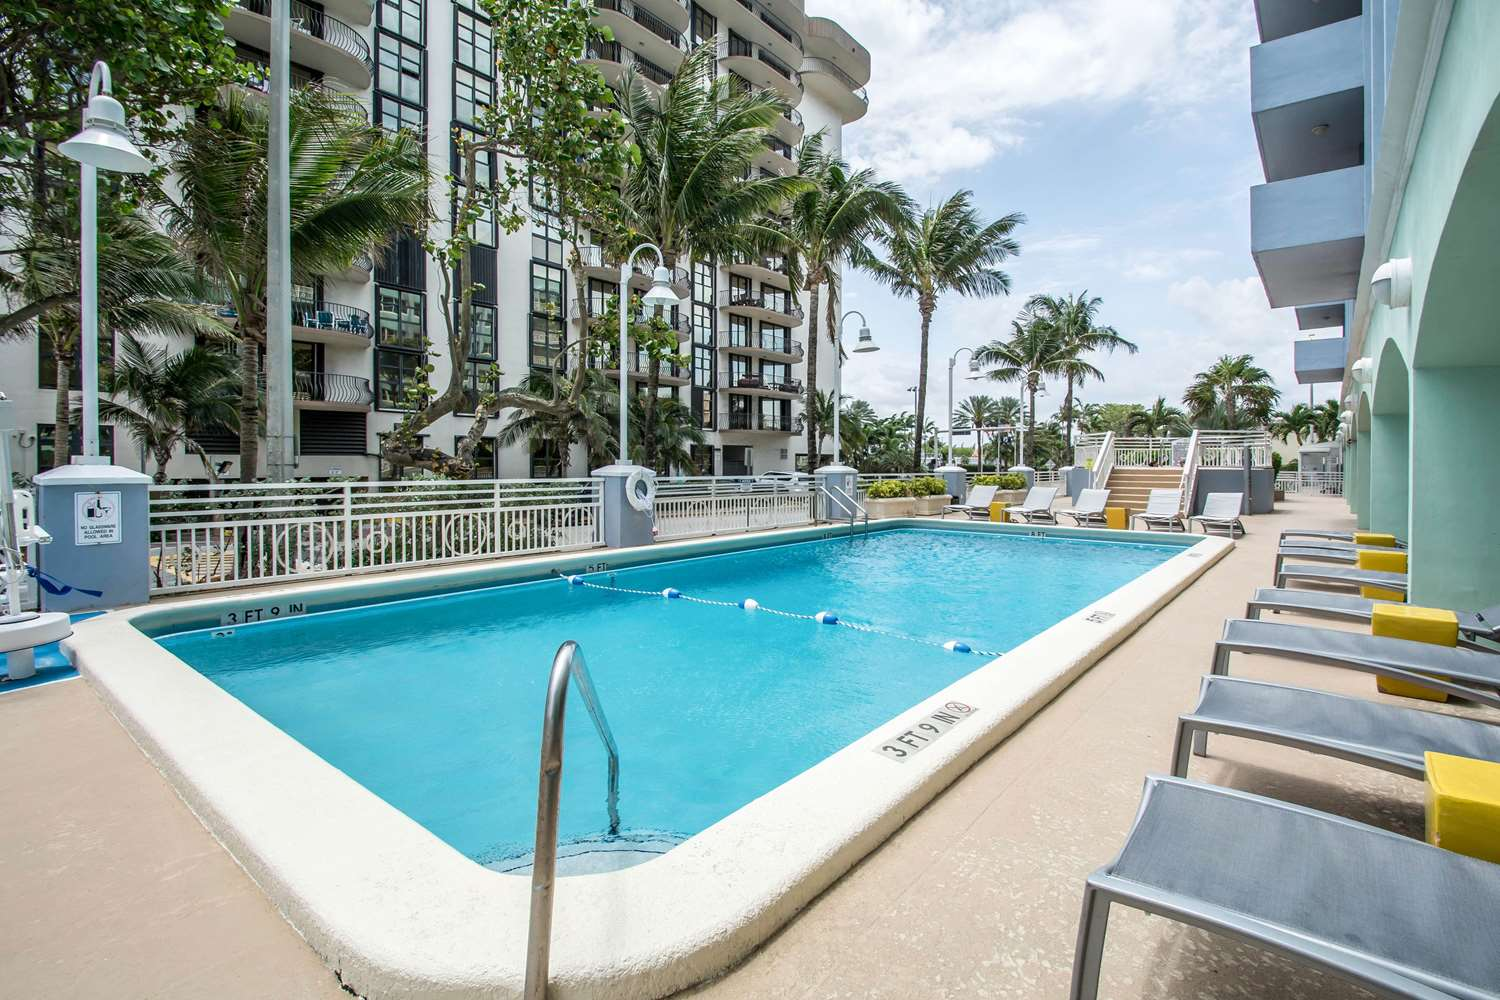 Pool - Solara Surfside Resort by Bluegreen Vacations